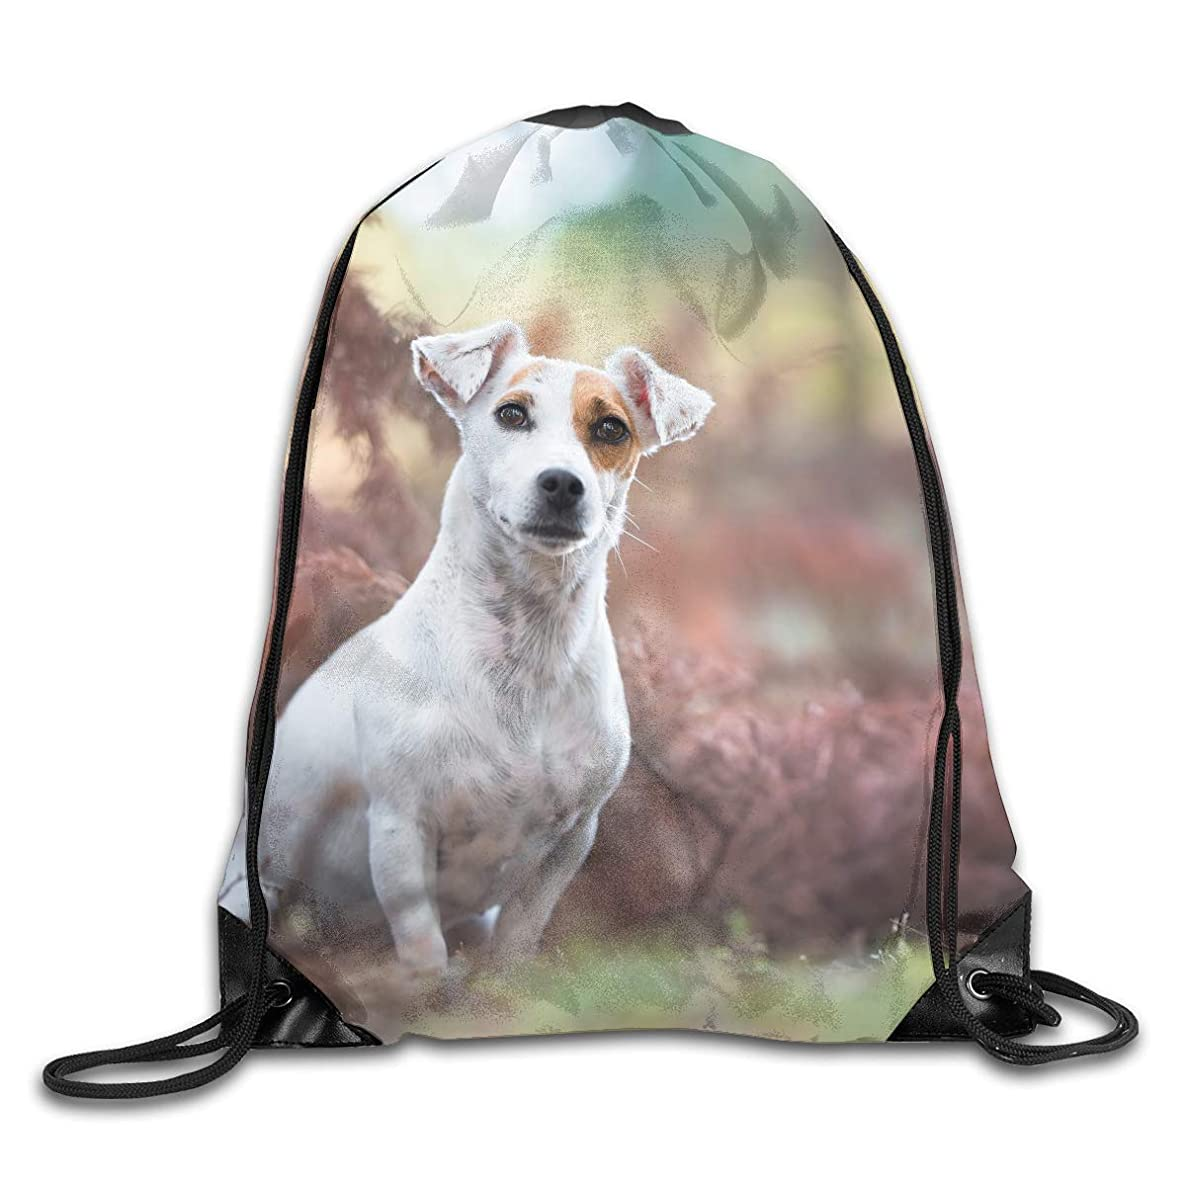 Beagle Meadow Play Dog StareDrawstring Bag Backpack Sackpack Shoulder Bags Gym Bag Lightweight Gym For Men And Women Hiking Swimming Yoga